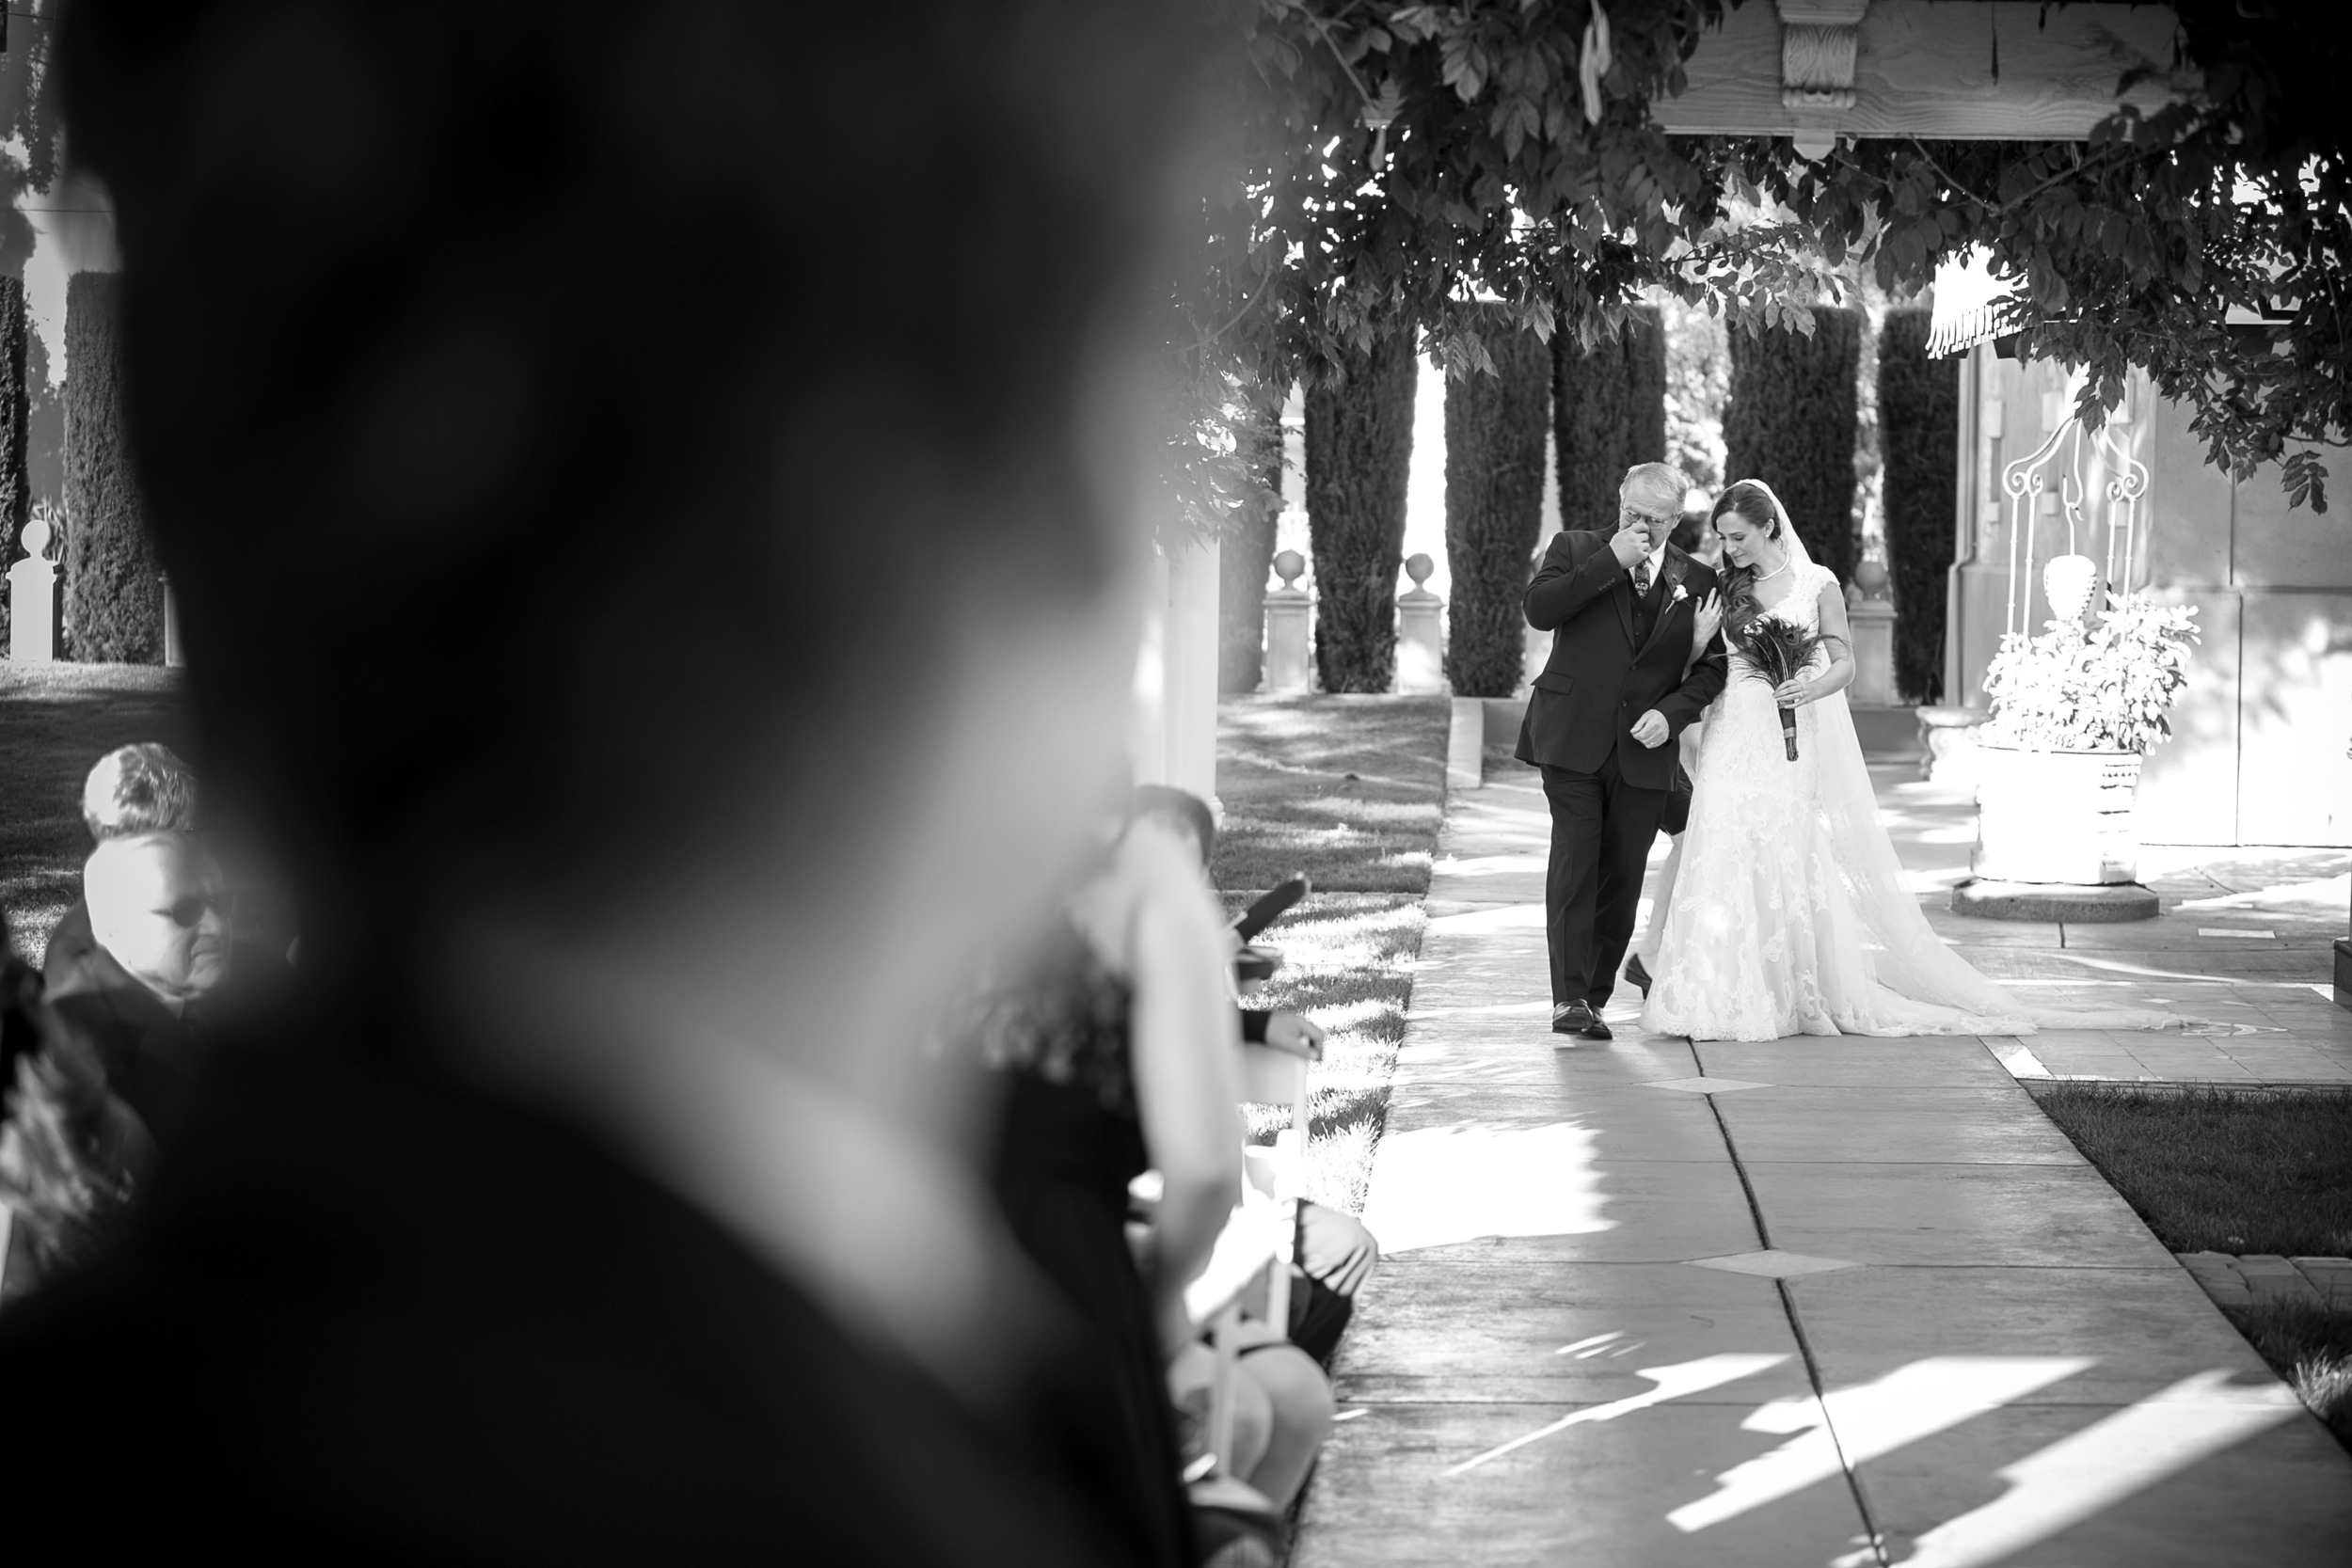 00143_20141101151408_San_Francisco_Wedding_Photographer_Sees_The_Day.jpg